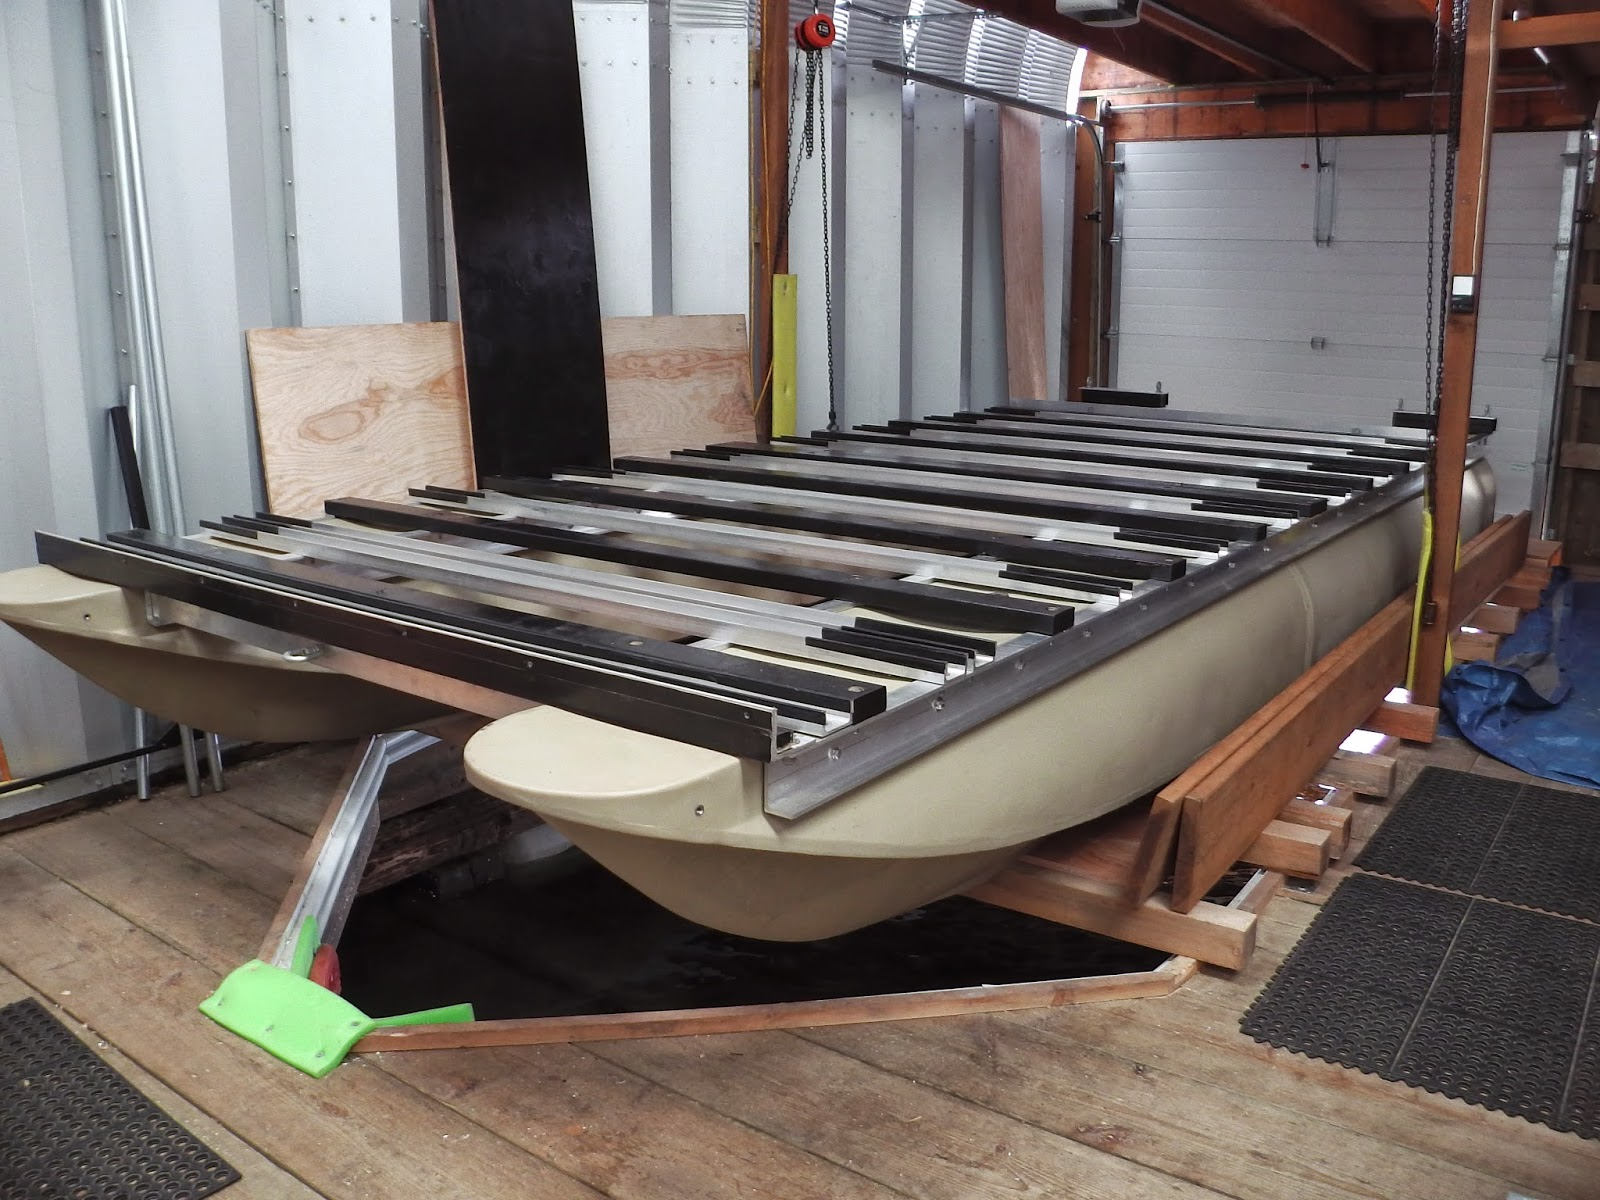 Global Product Reviews: Cool pontoon boat product: Liquid